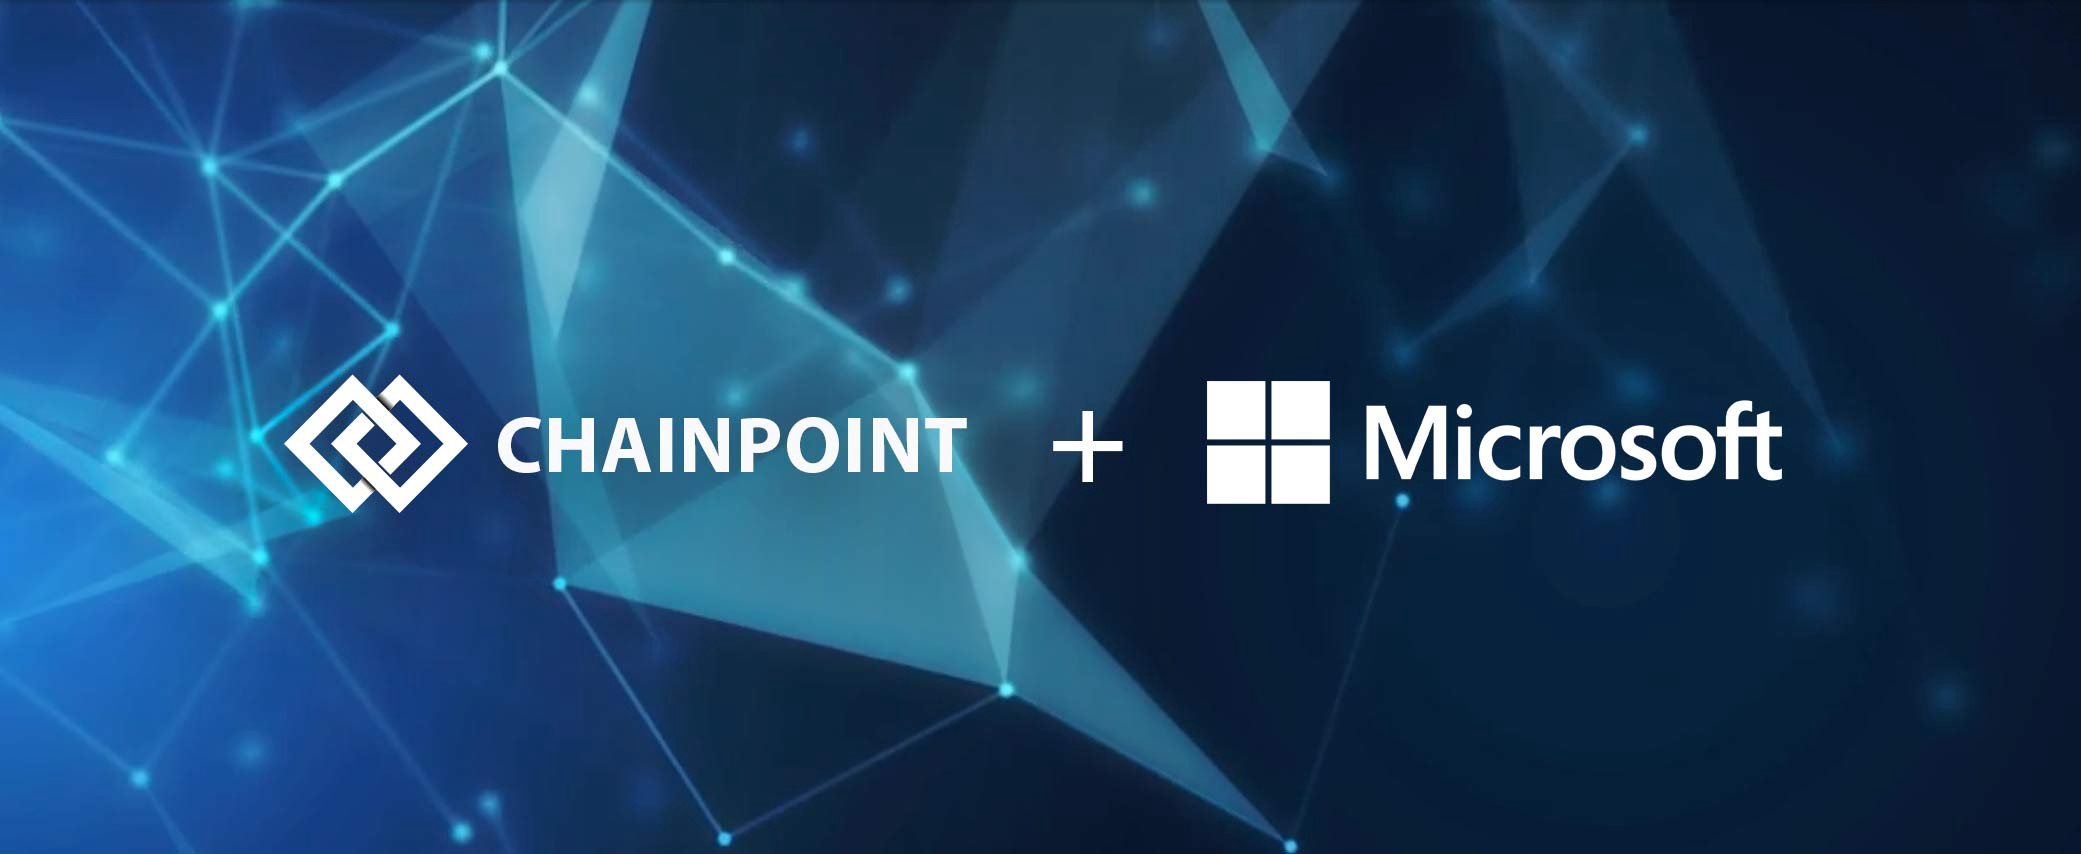 medium.com - Chainpoint Launches on Microsoft Logic Apps and Microsoft Flow